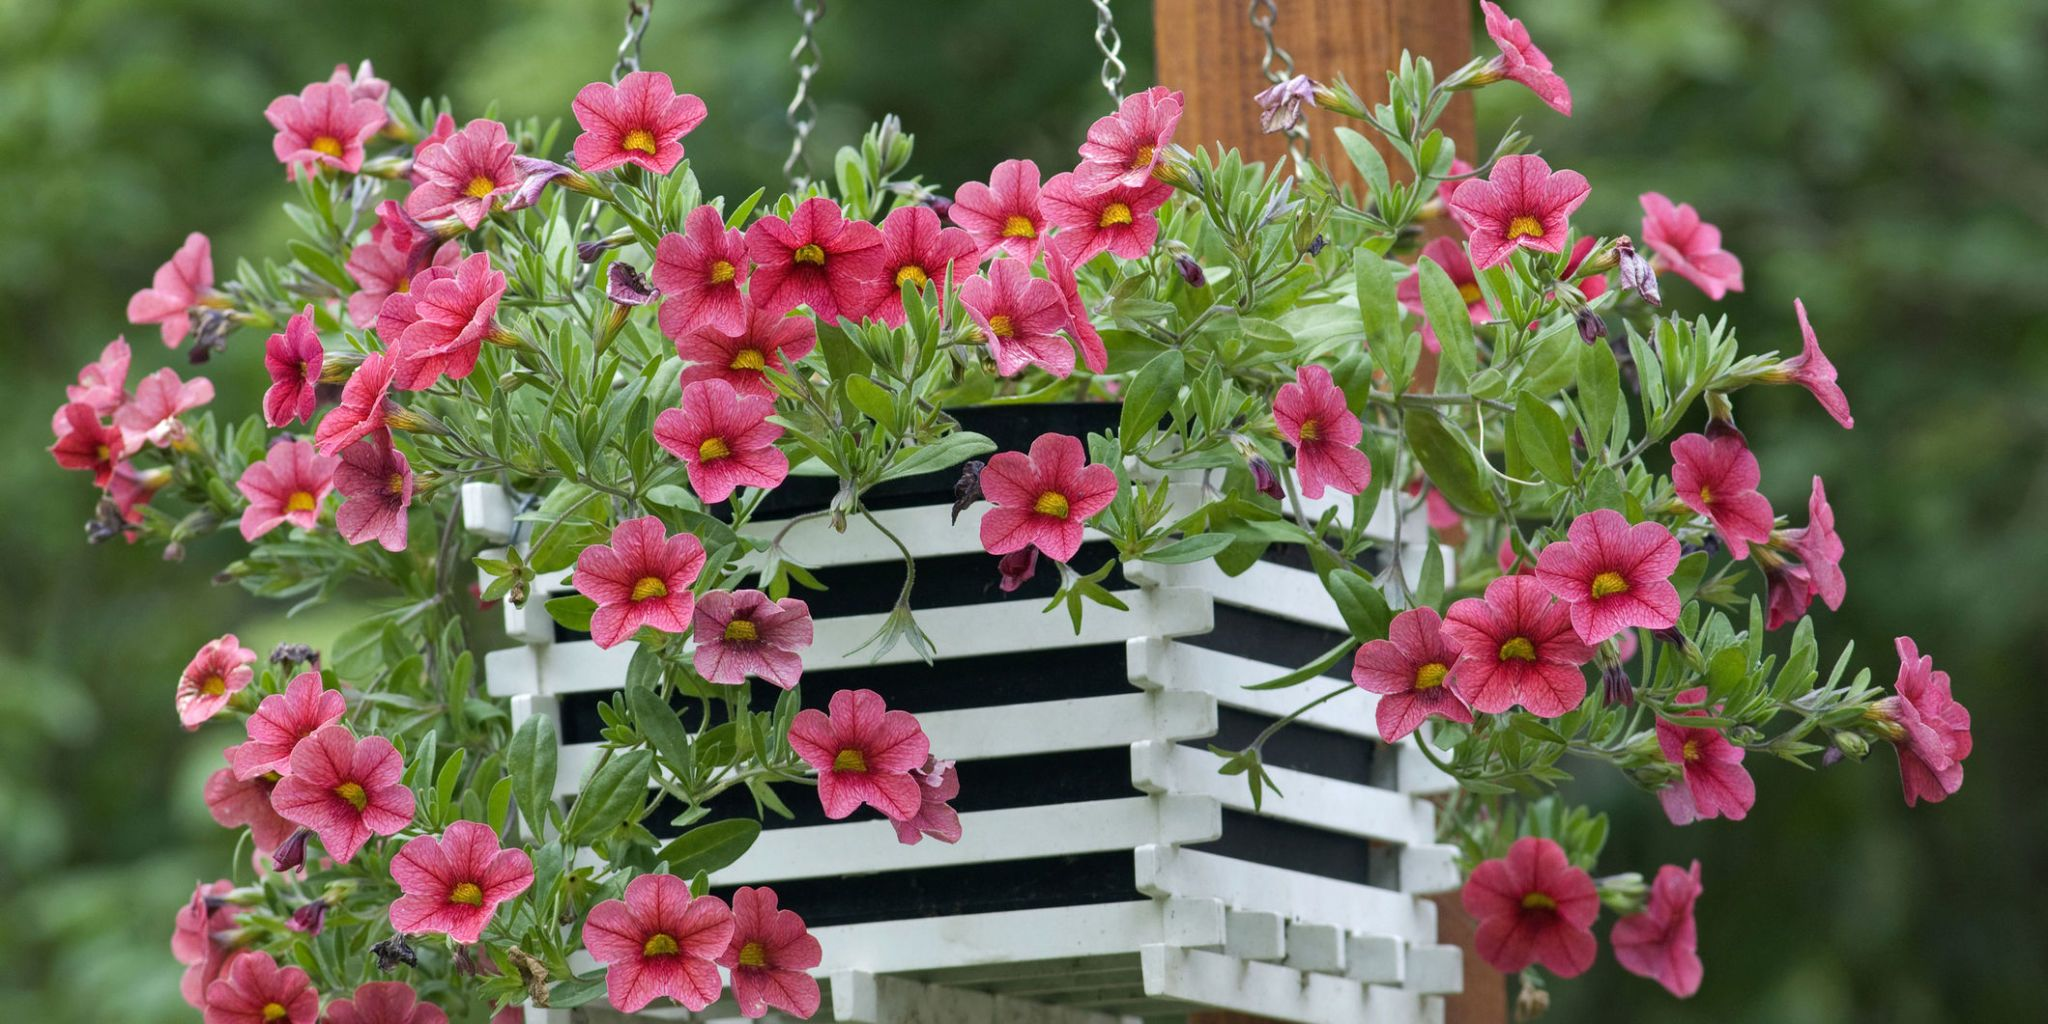 How To Attach Hanging Baskets On A Brick Wall And Fence